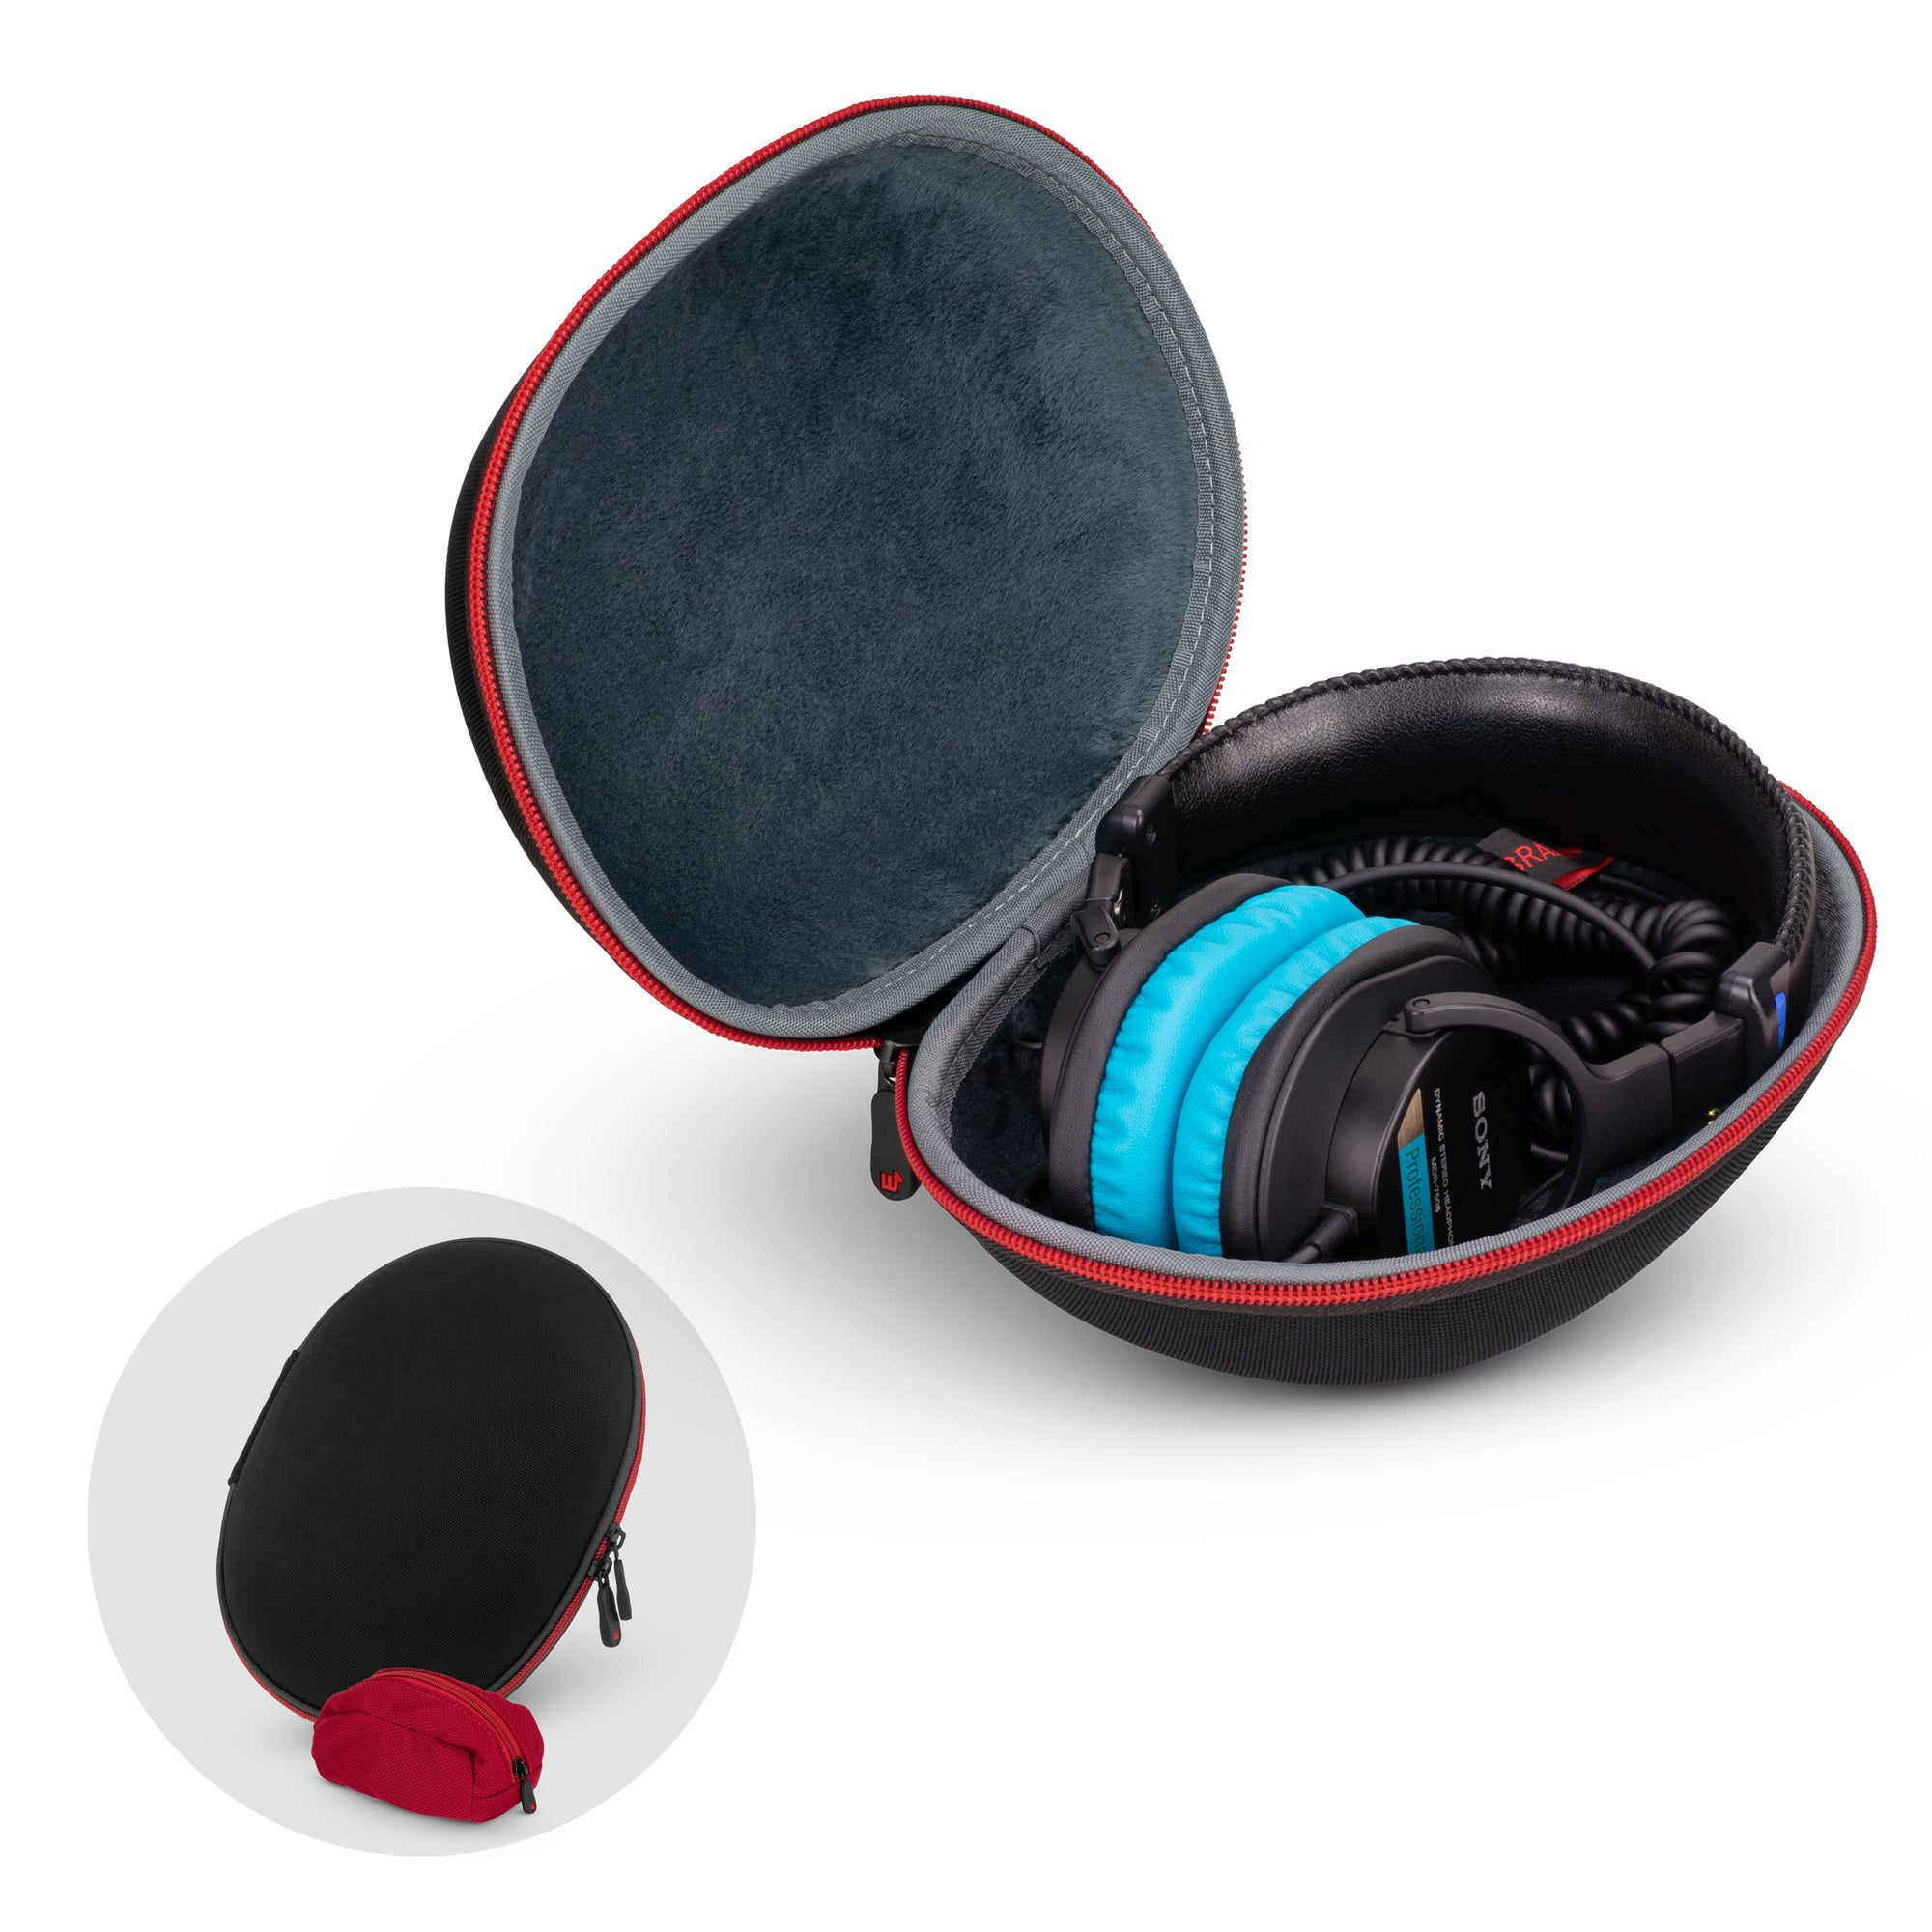 Headphone Hard Shell Carrying Case